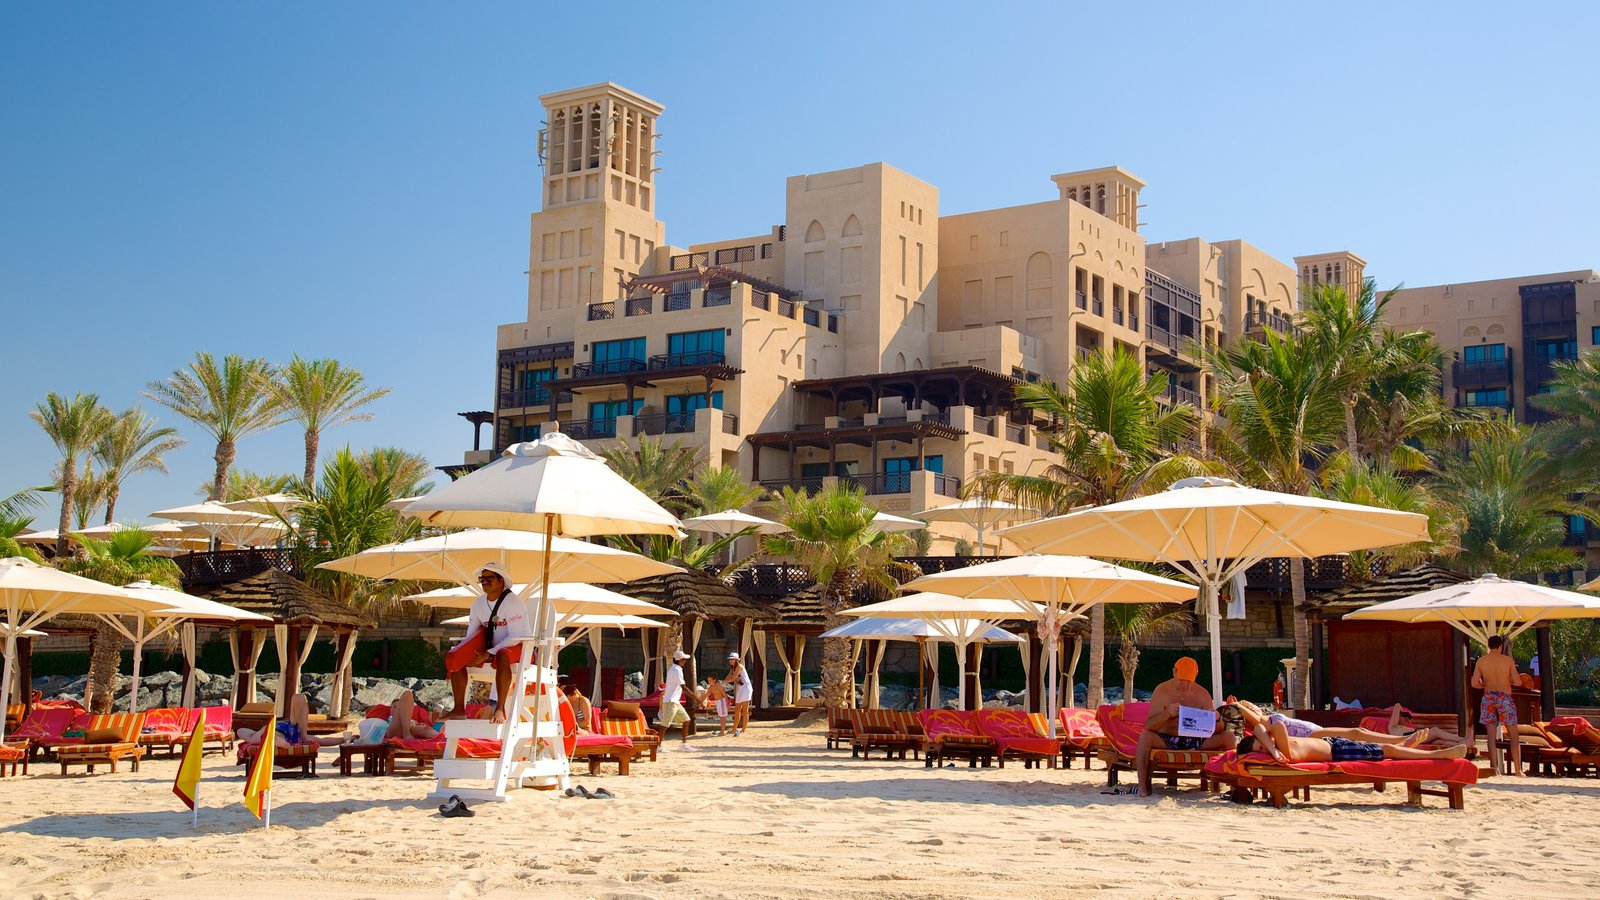 Souk Madinat Jumeirah which includes a beach, a luxury hotel or resort and tropical scenes